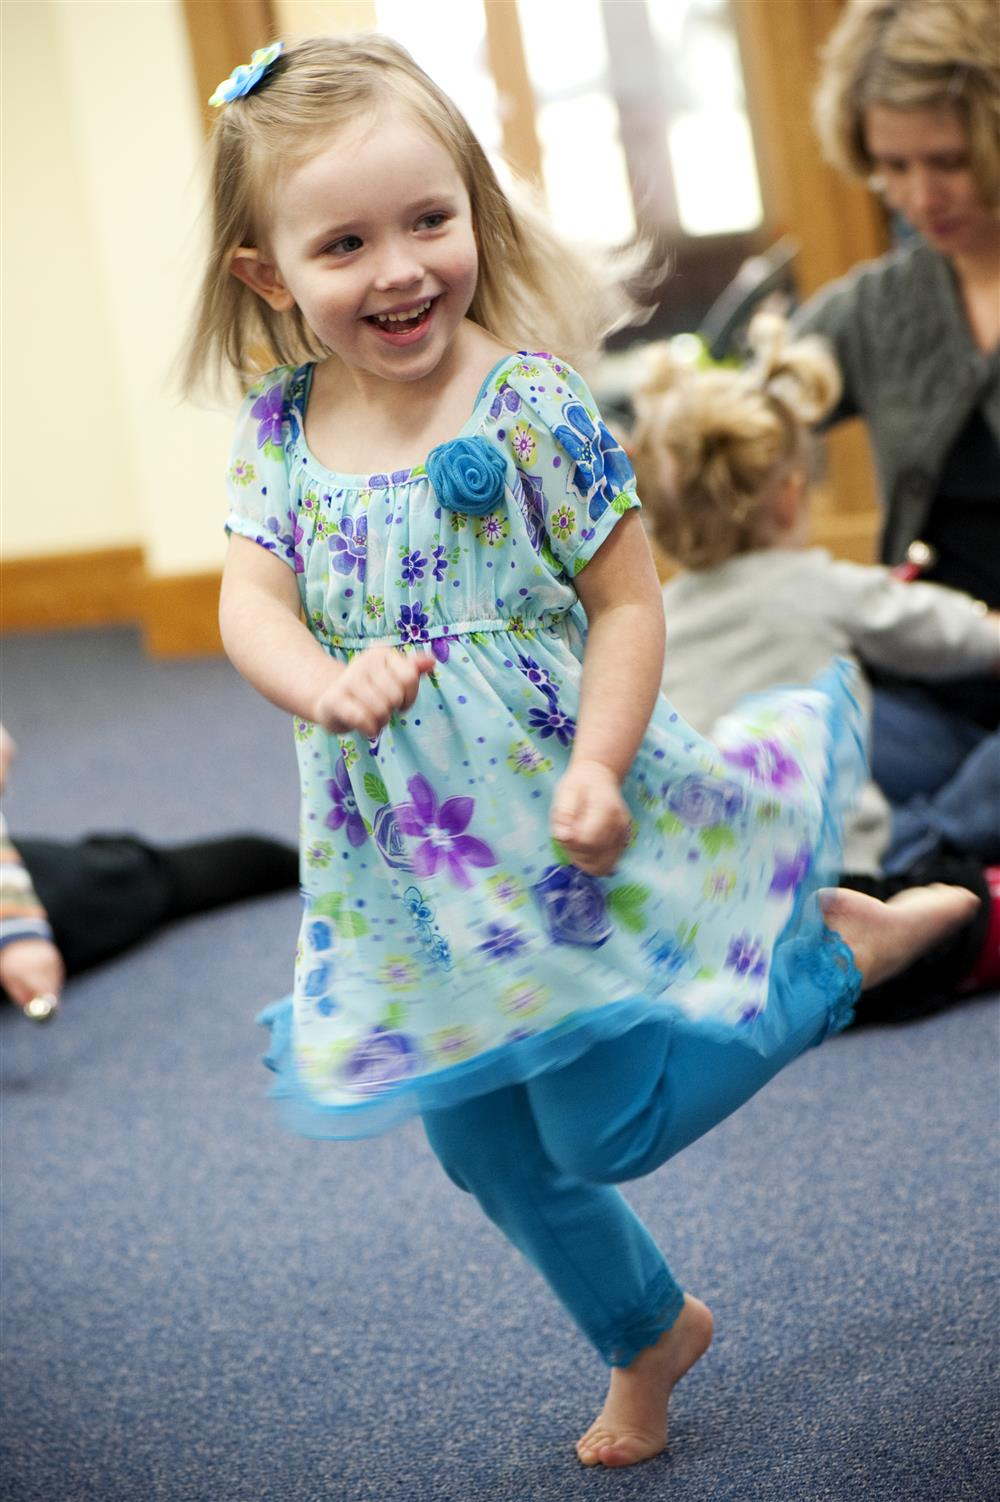 Move for fun, move to learn! - Kindermusik